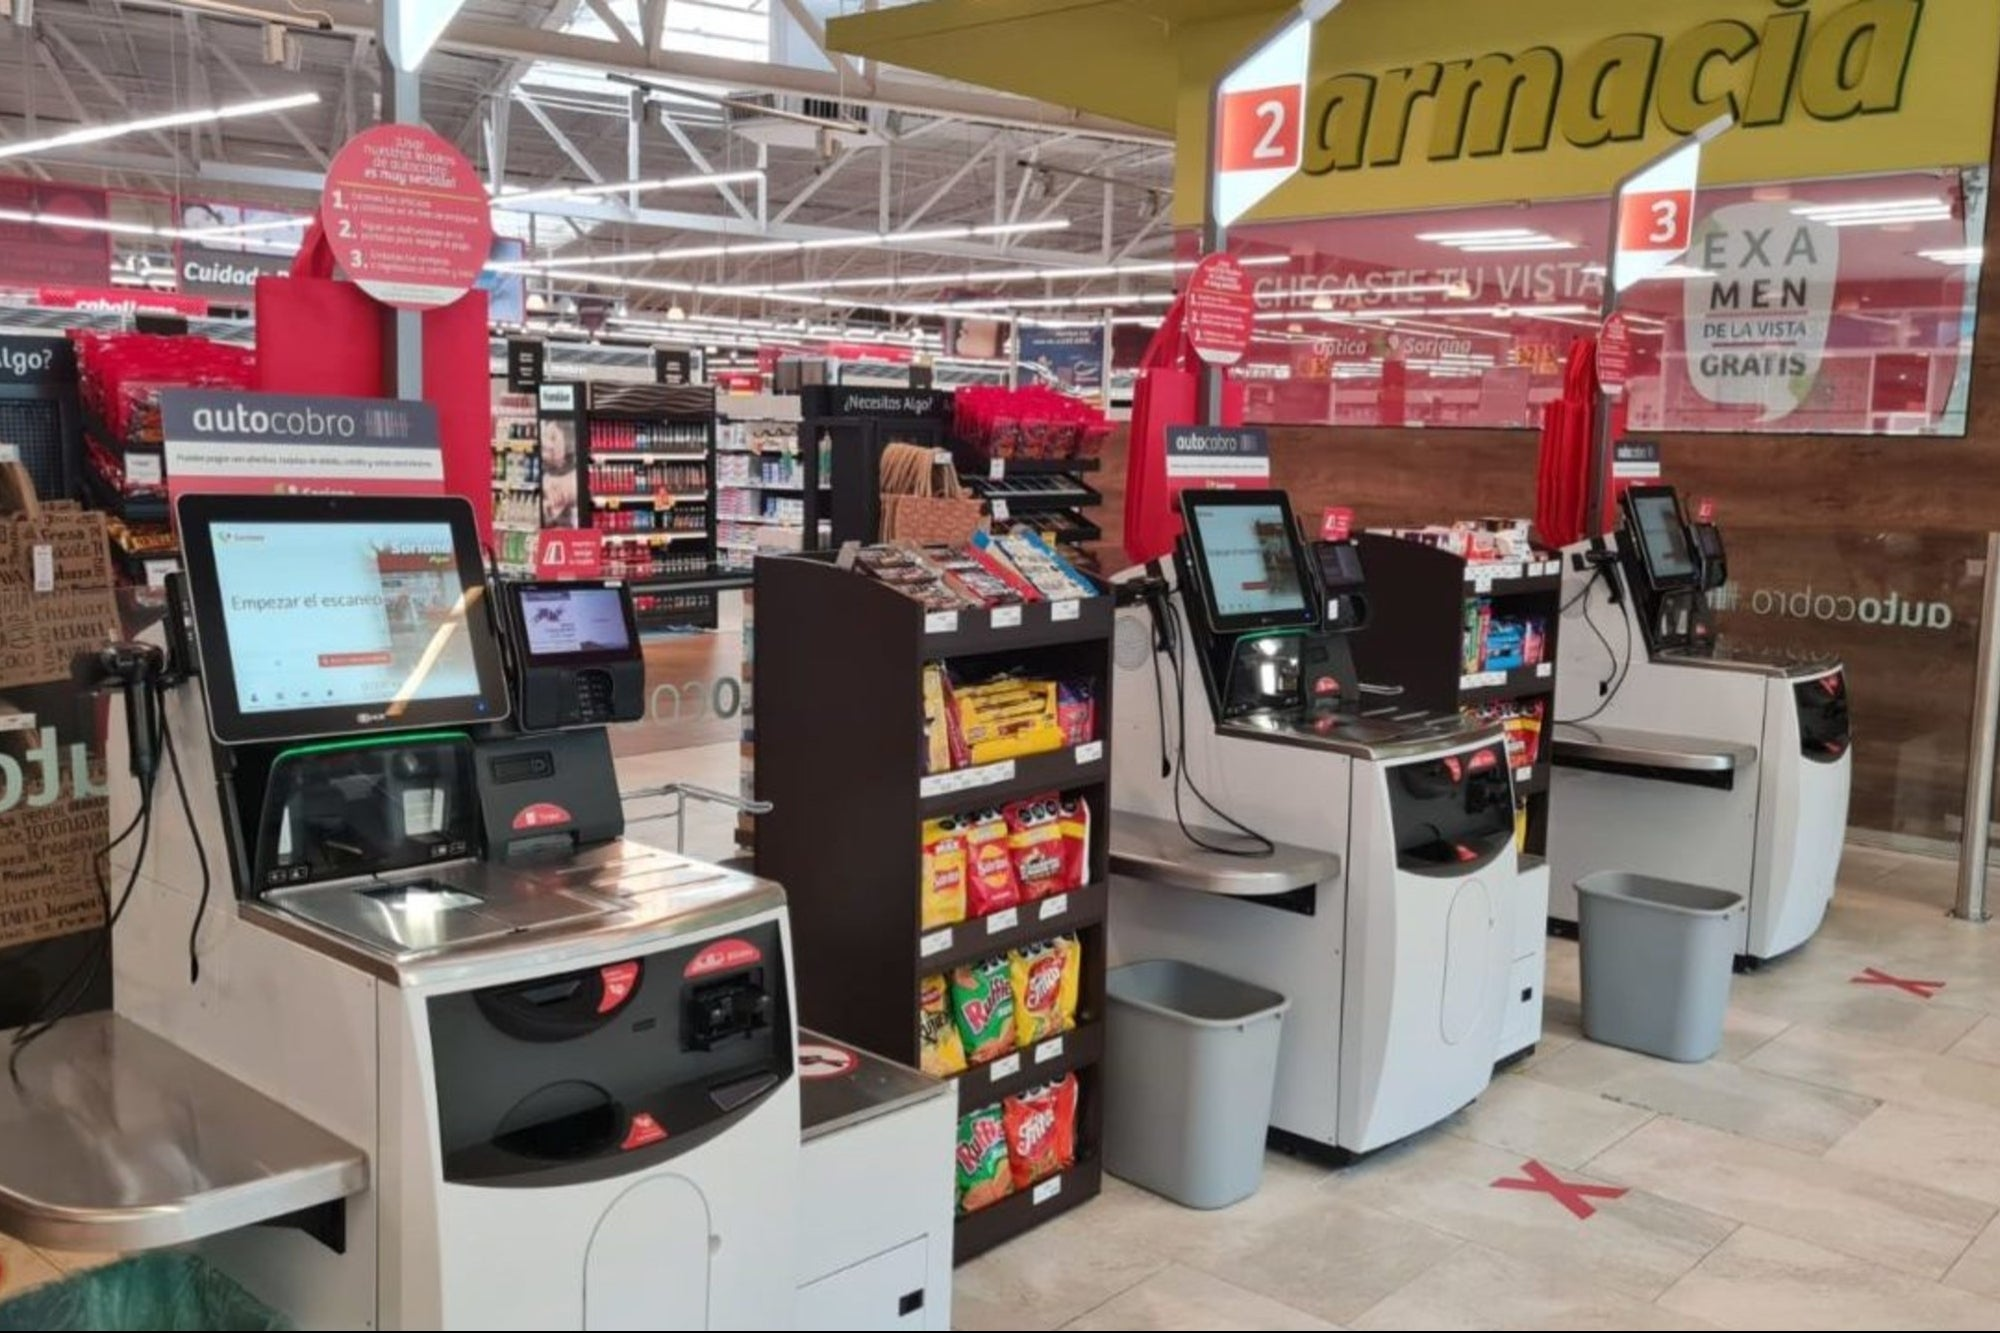 Soriana is going to install self-collection boxes in a branch of Nuevo León